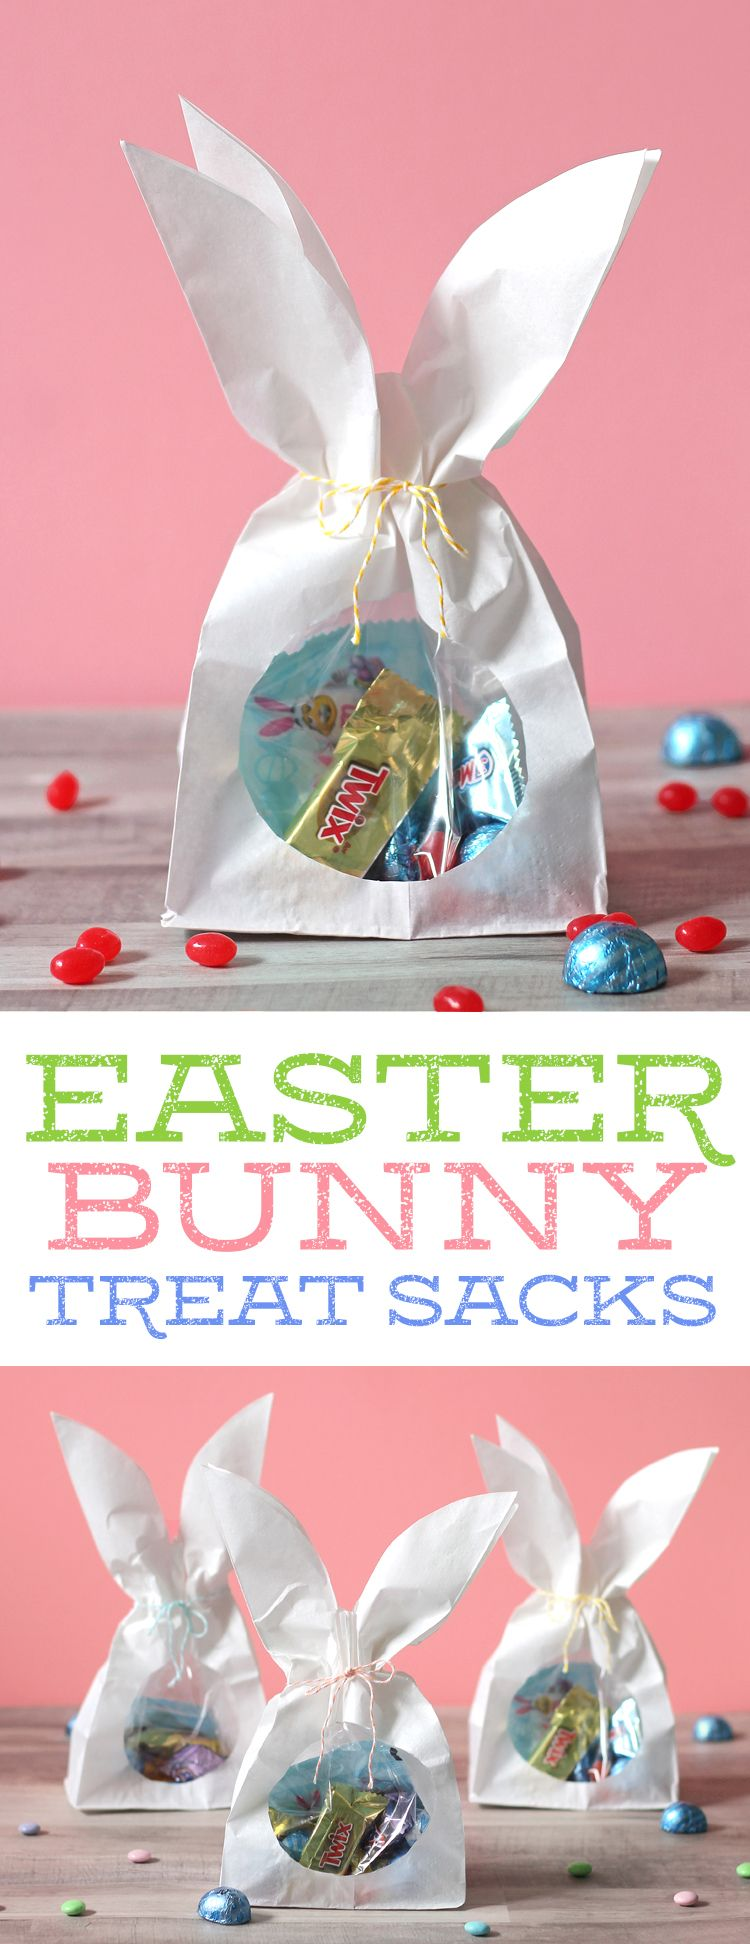 DIY Easter bunny treat sacks. Such a cute and easy Spring Easter craft idea. What a fun way to package up a sweet Easter gift! #SweeterEaster [ad] @walmart